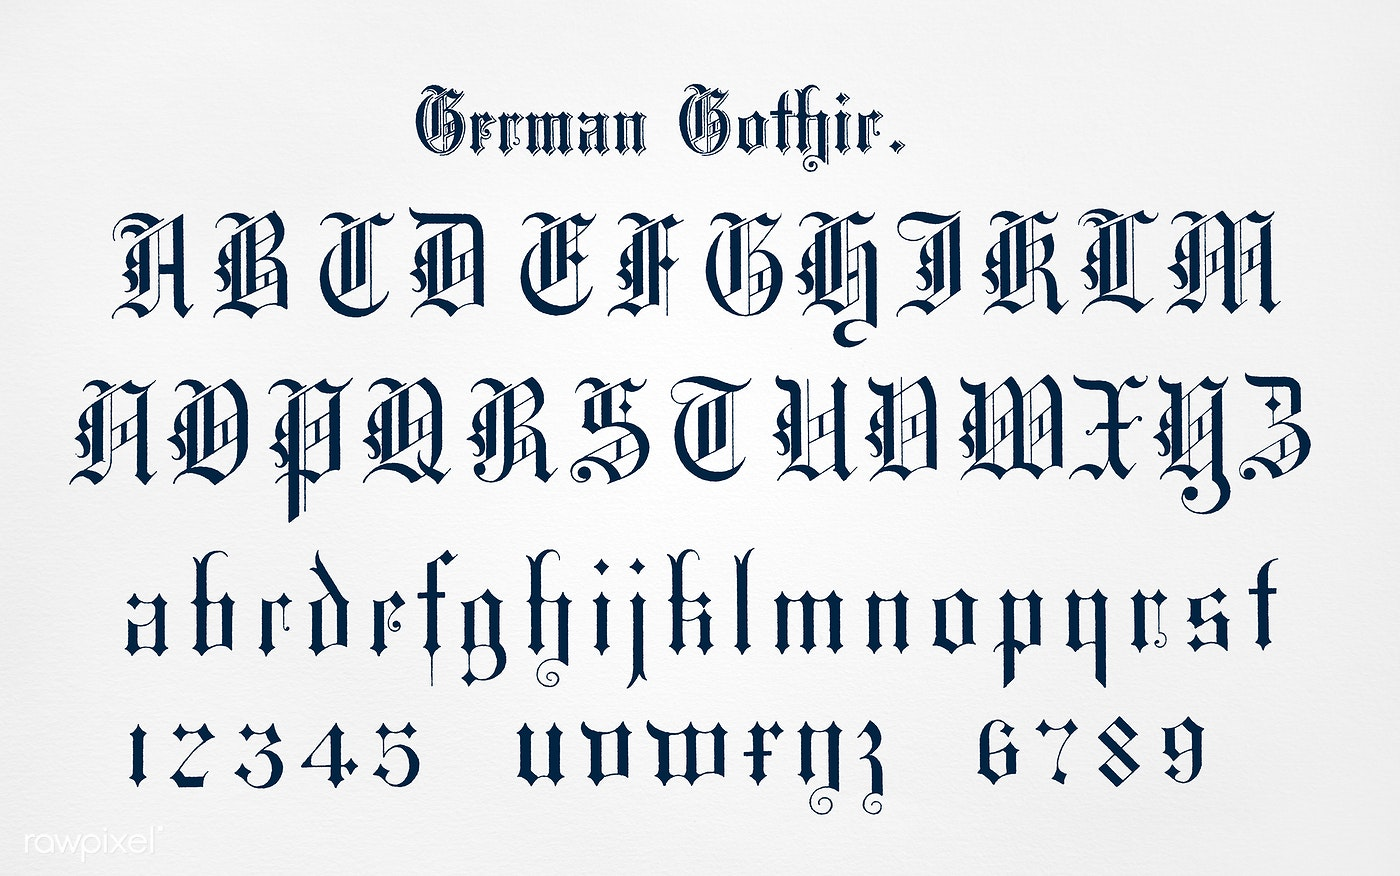 German style calligraphy fonts from Draughtsm   | Free